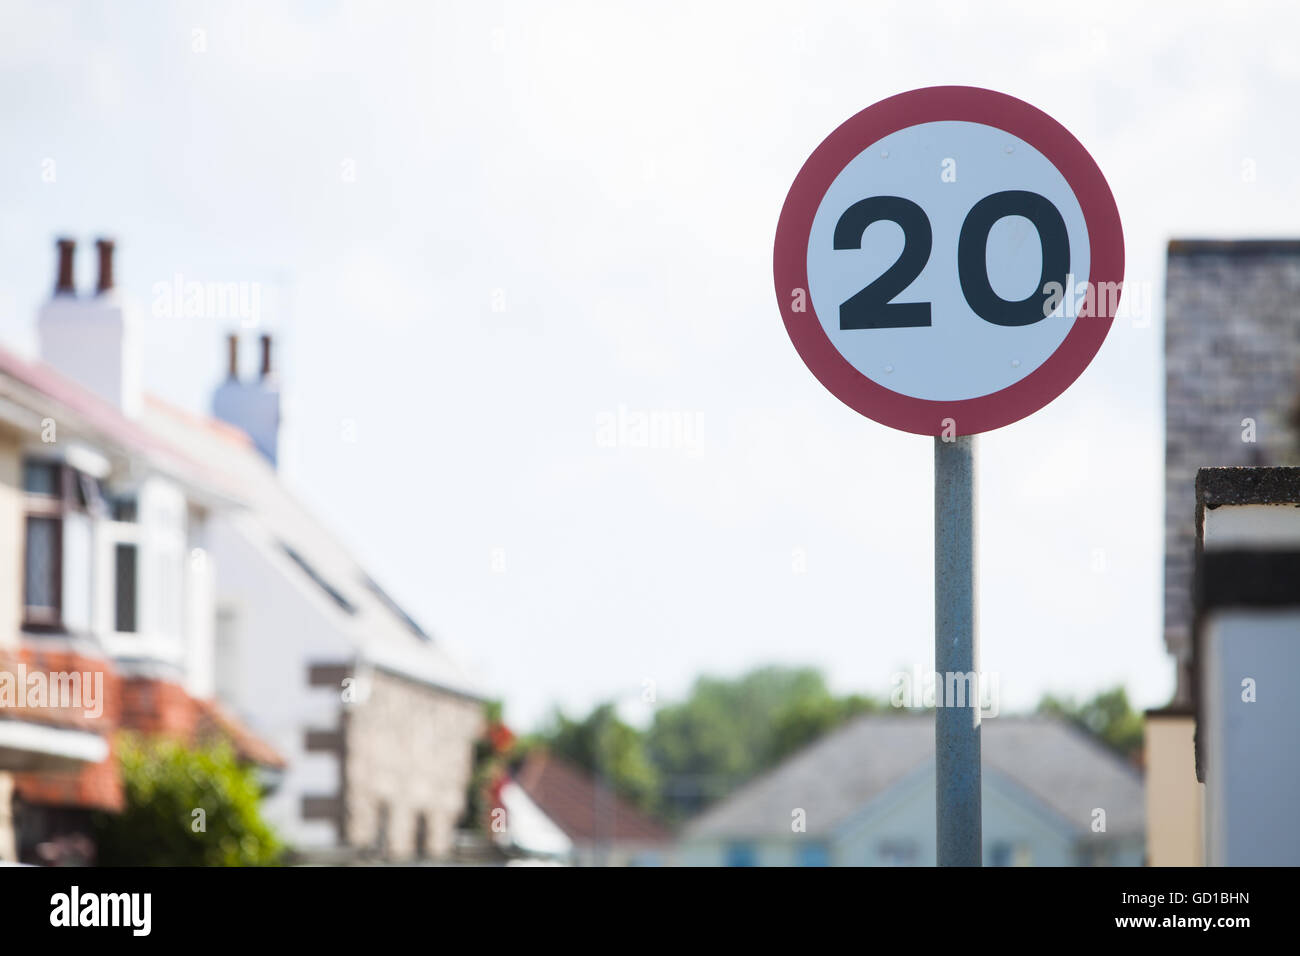 Color image of a 20km/h speed restriction road sign. Stock Photo